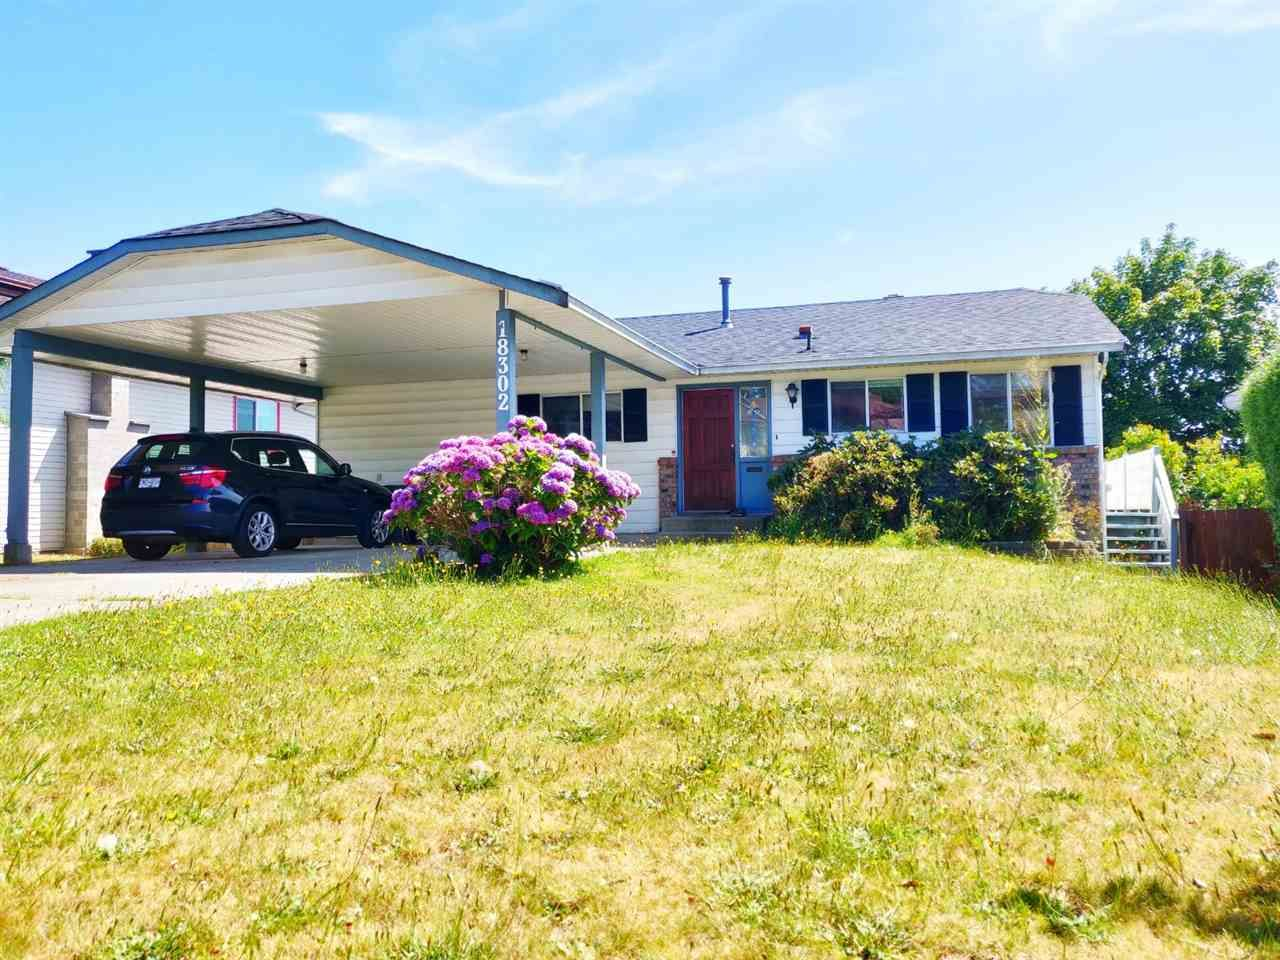 Main Photo: 18302 56B Avenue in Surrey: Cloverdale BC House for sale (Cloverdale)  : MLS®# R2388887